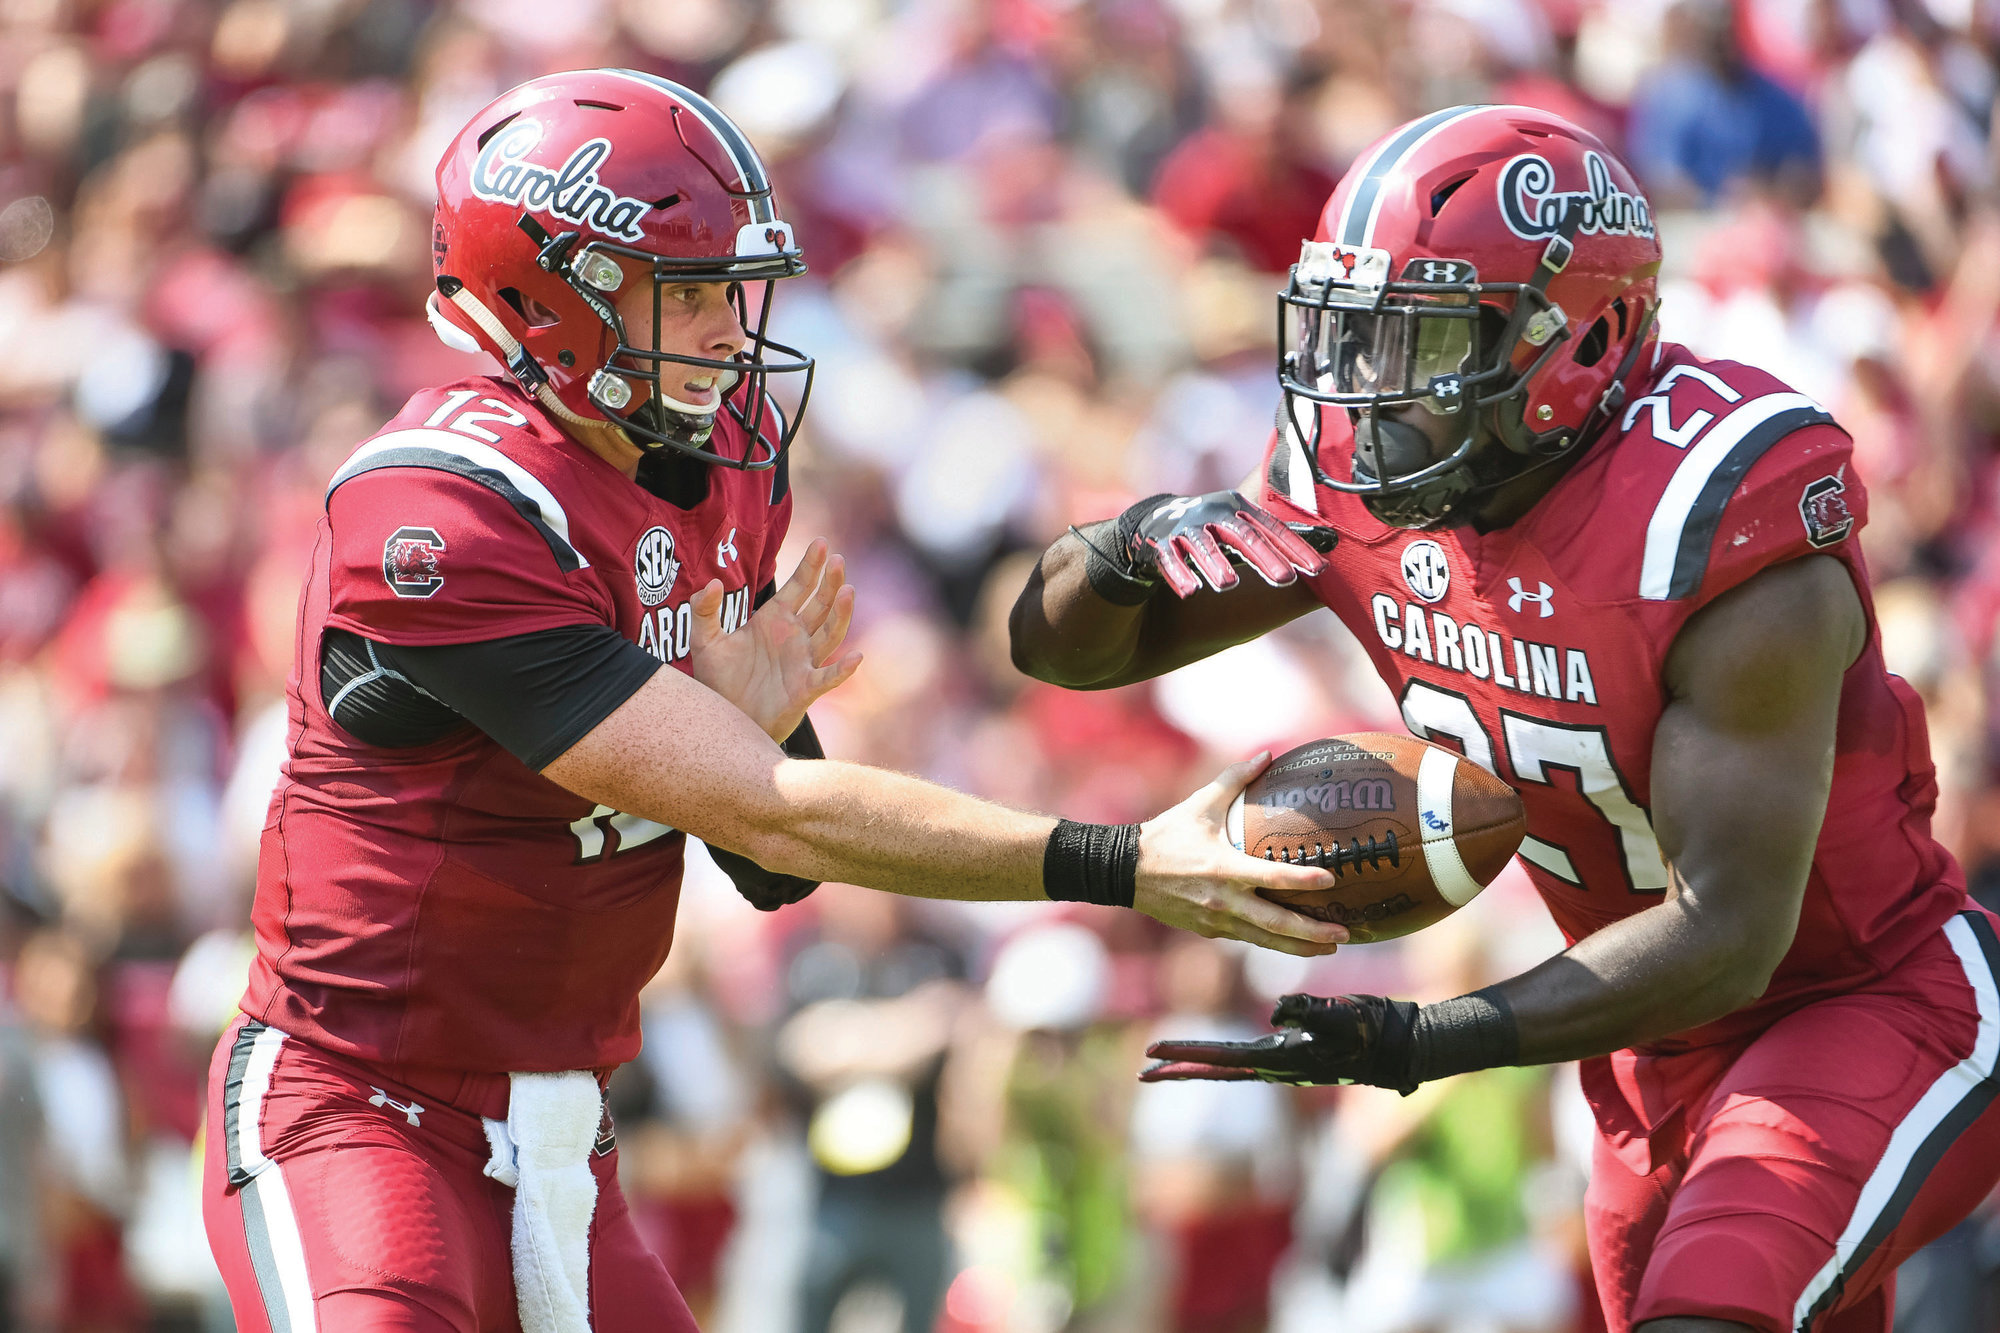 THE ASSOCIATED PRESS South Carolina quarterback Michael Scarnecchia (12), shown handing the ball off to running back Ty'Son Williams in the Gamecocks' 37-35 victory over Missouri on Saturday, should get the start when USC plays host to Texas A&M this Saturday.